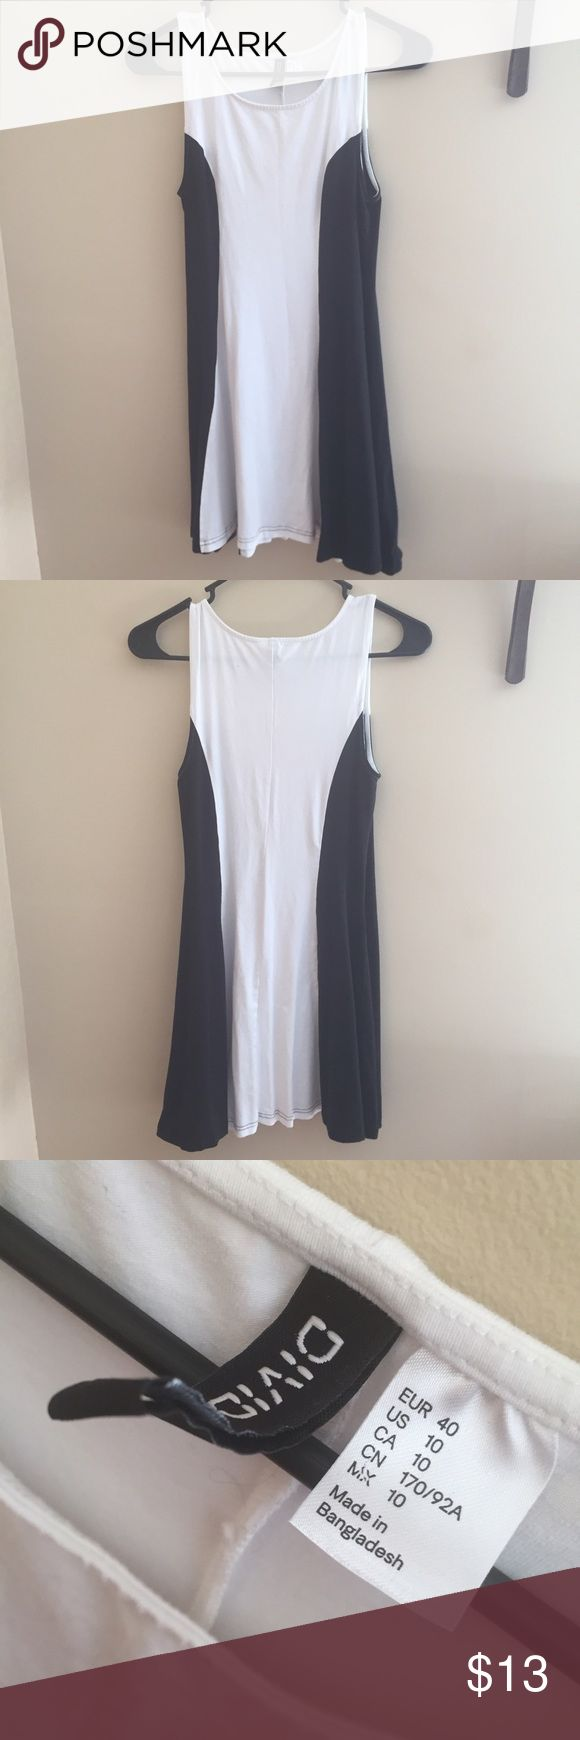 Black and white skater dress White skater dress with black sides that help enhance your figure and make your waist look smaller. Very stretchy. H&M Dresses Mini